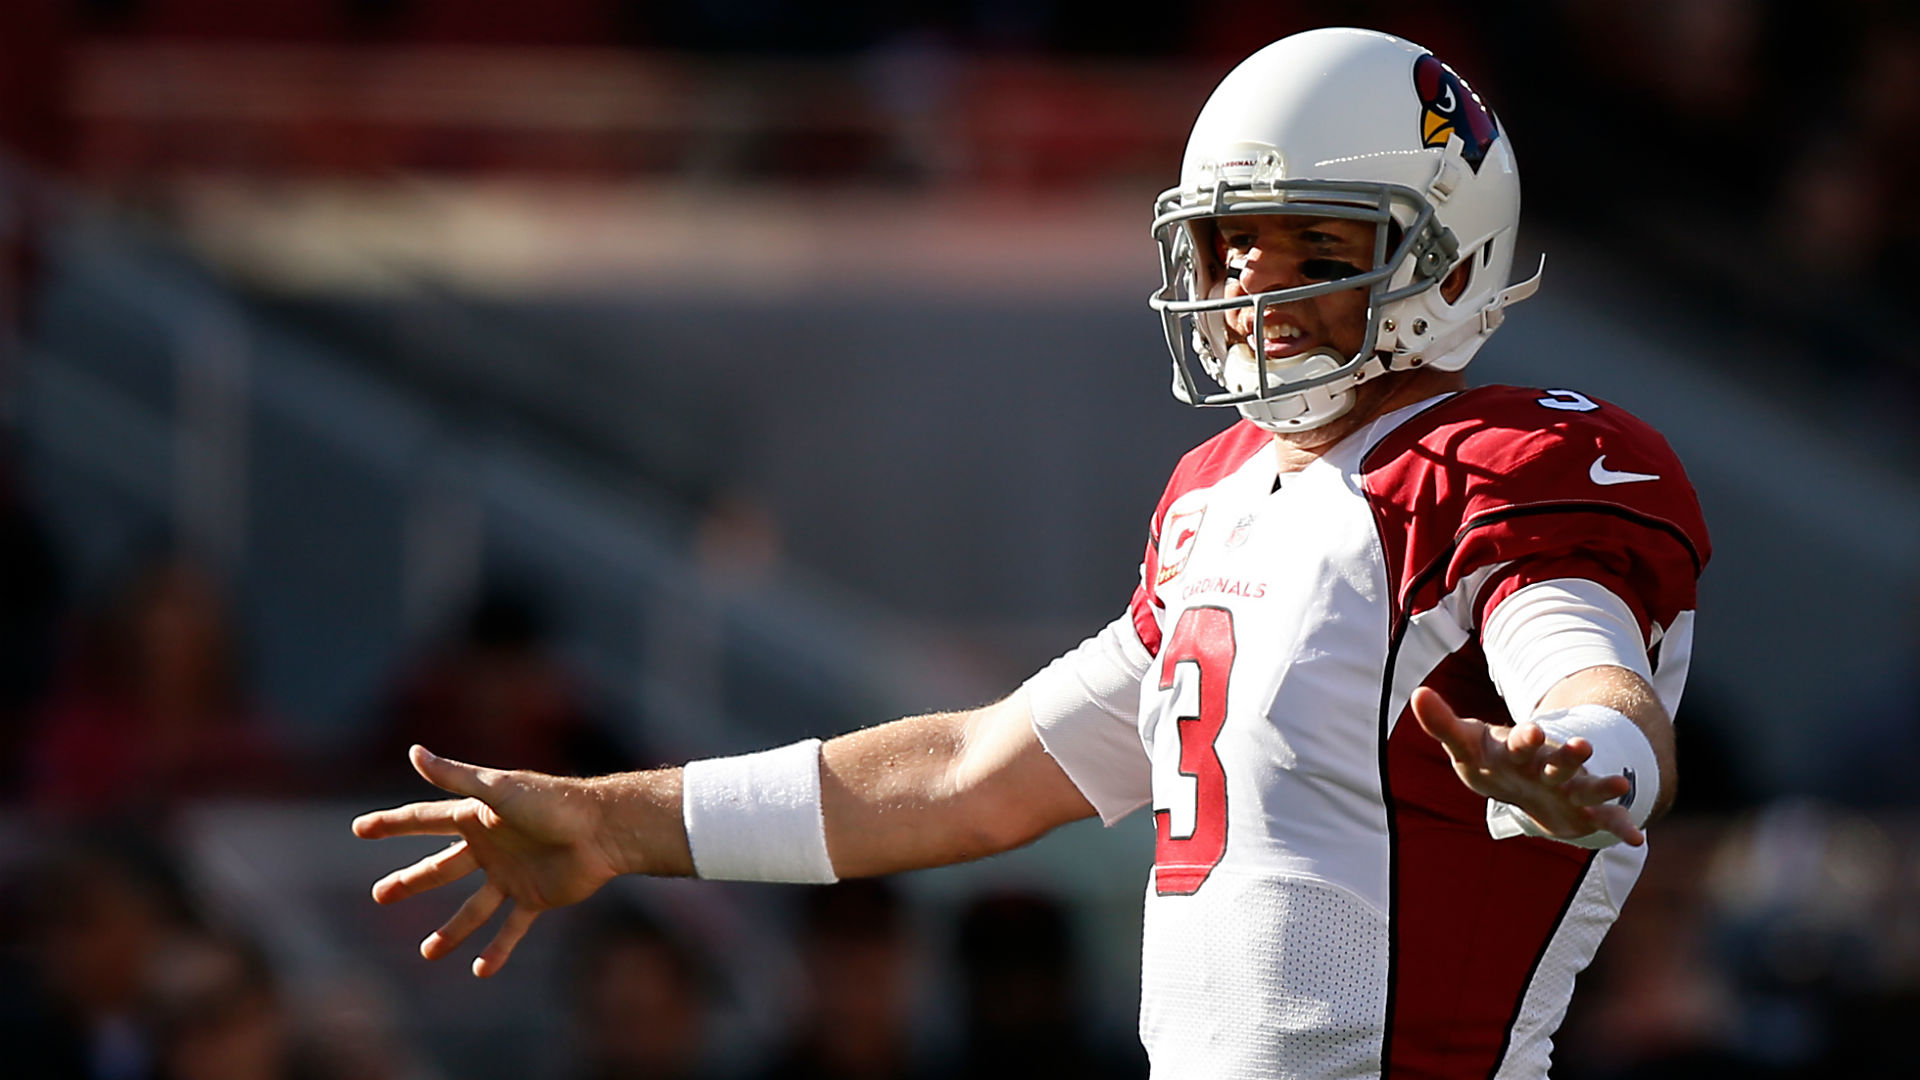 Guest blogger Duncan Terry looks at the most overrated and underrated members of the NFC West